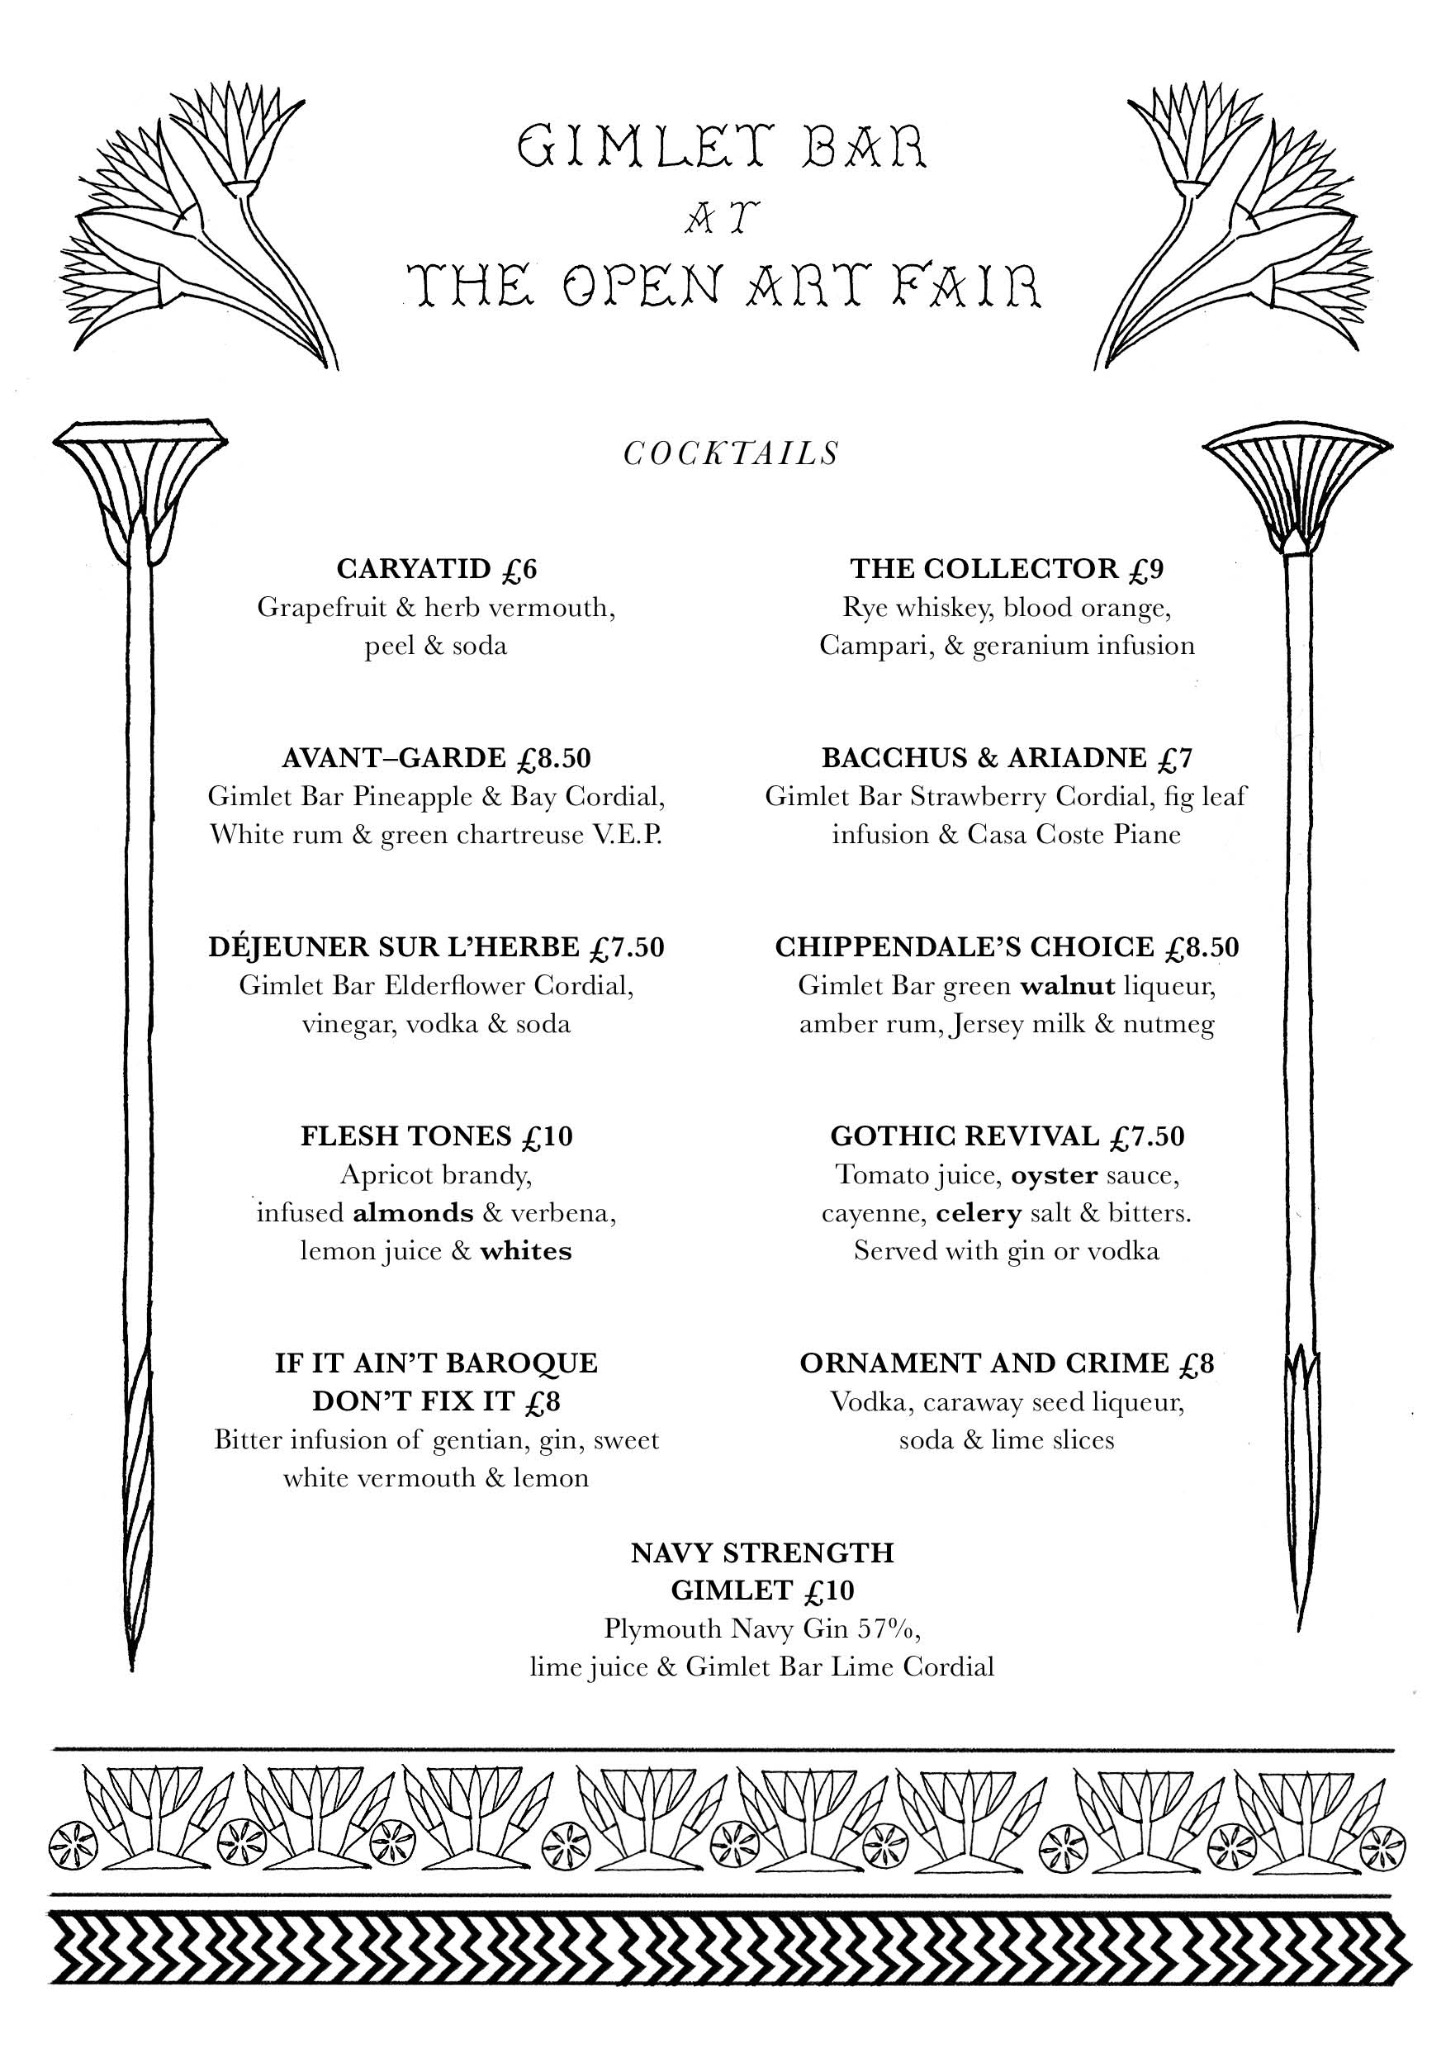 Our special menu for The Open Art Fair in London